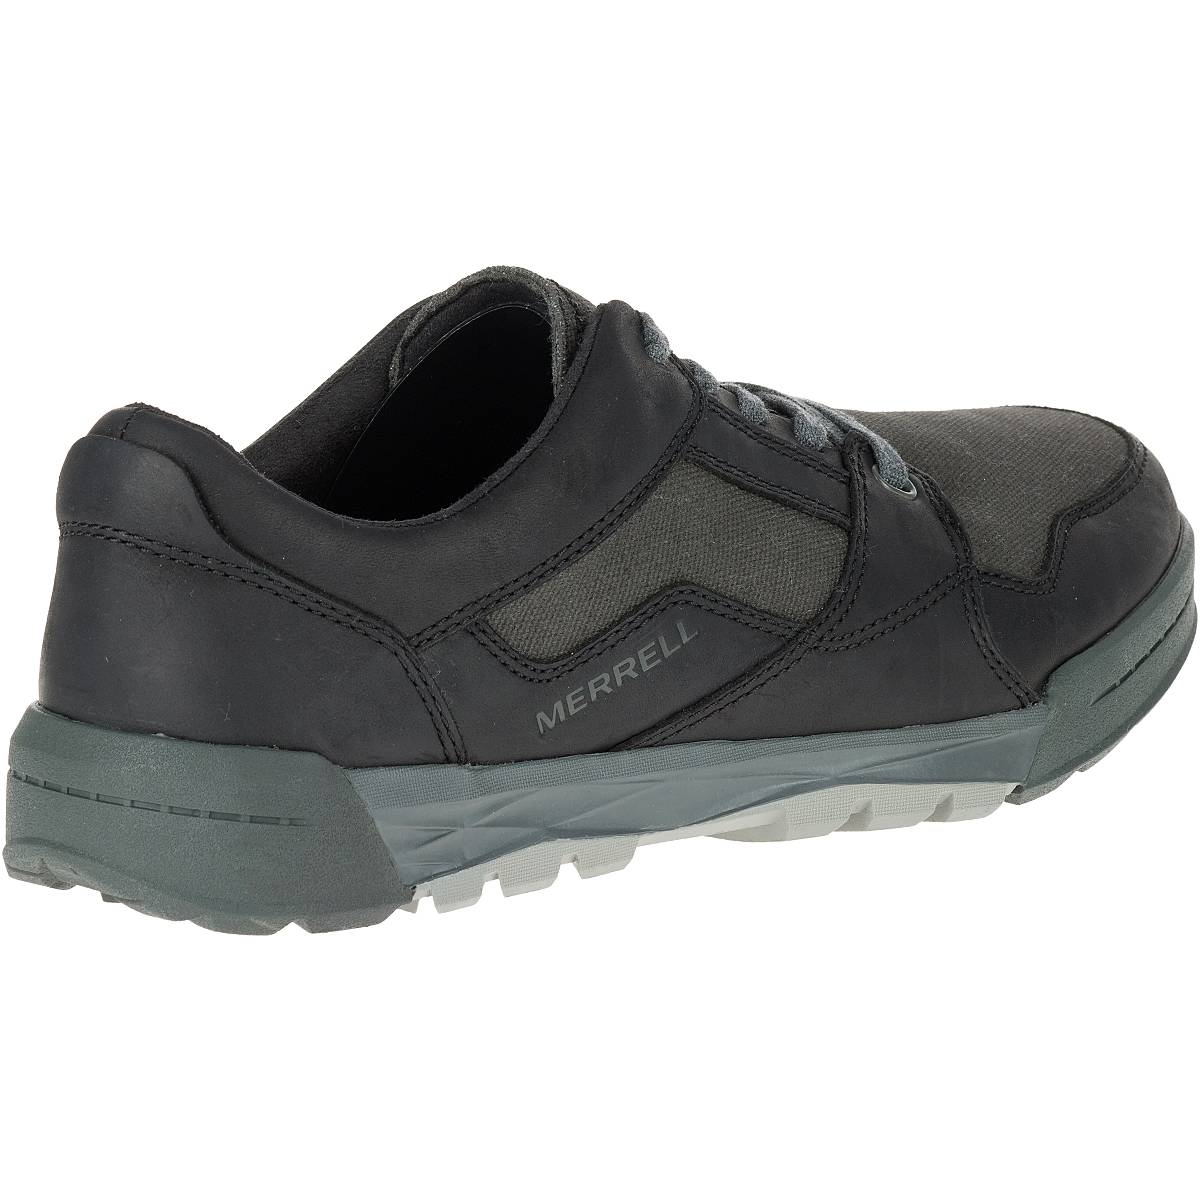 shoes for cheap new images of good out x Merrell Berner Shift Lace Shoes (Men's) - Black